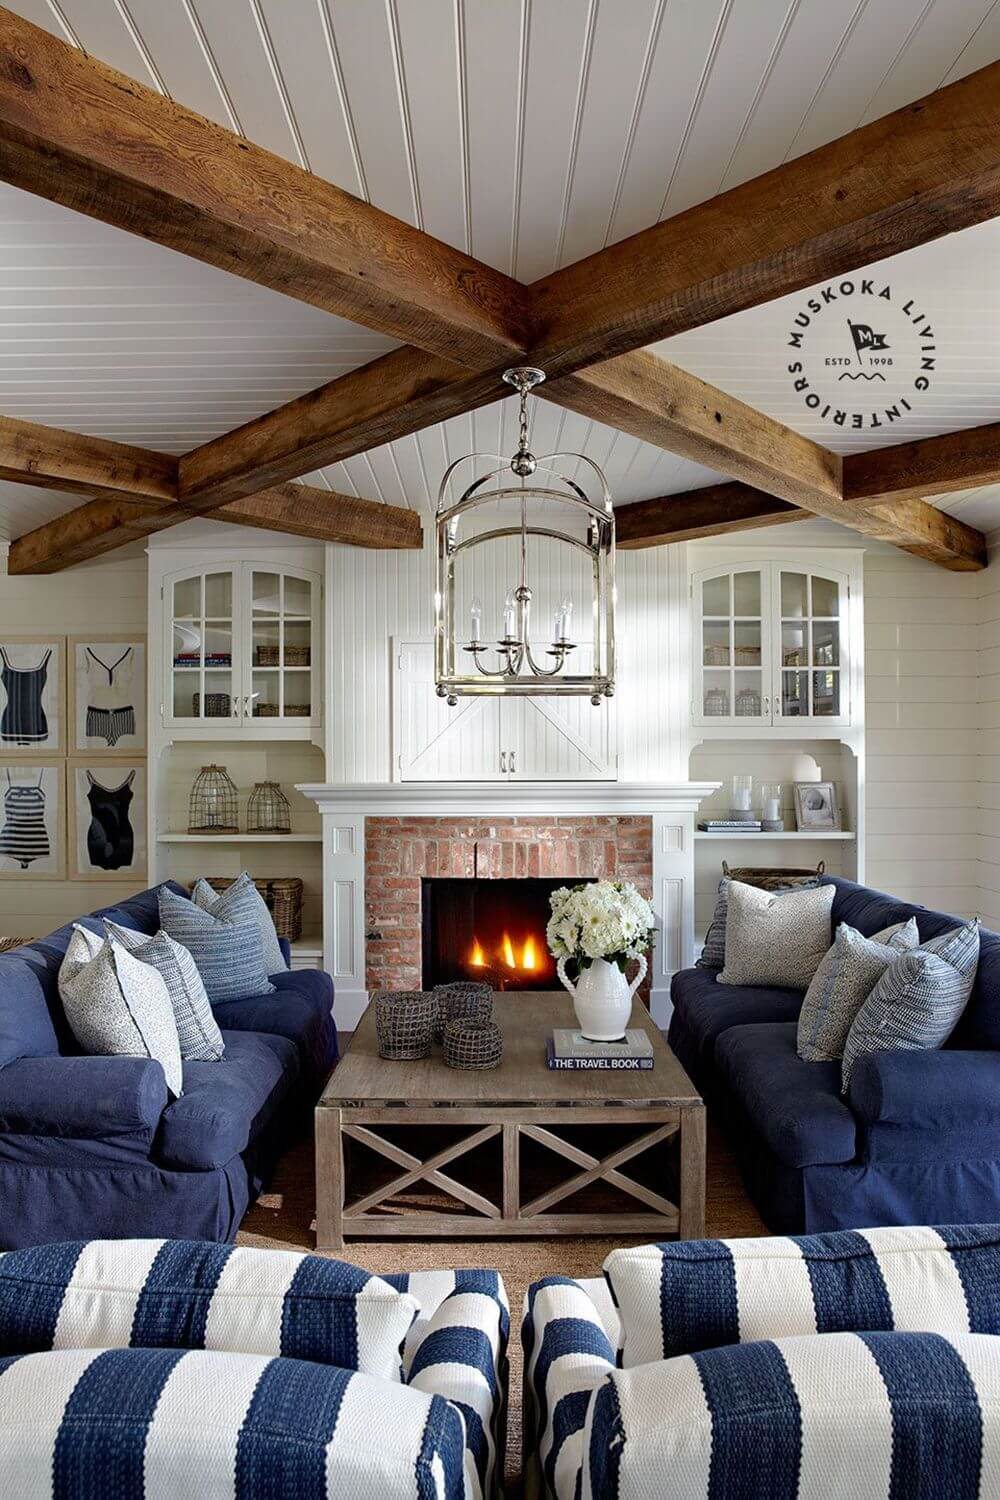 A Wooden Beachside Room with Blue Accents